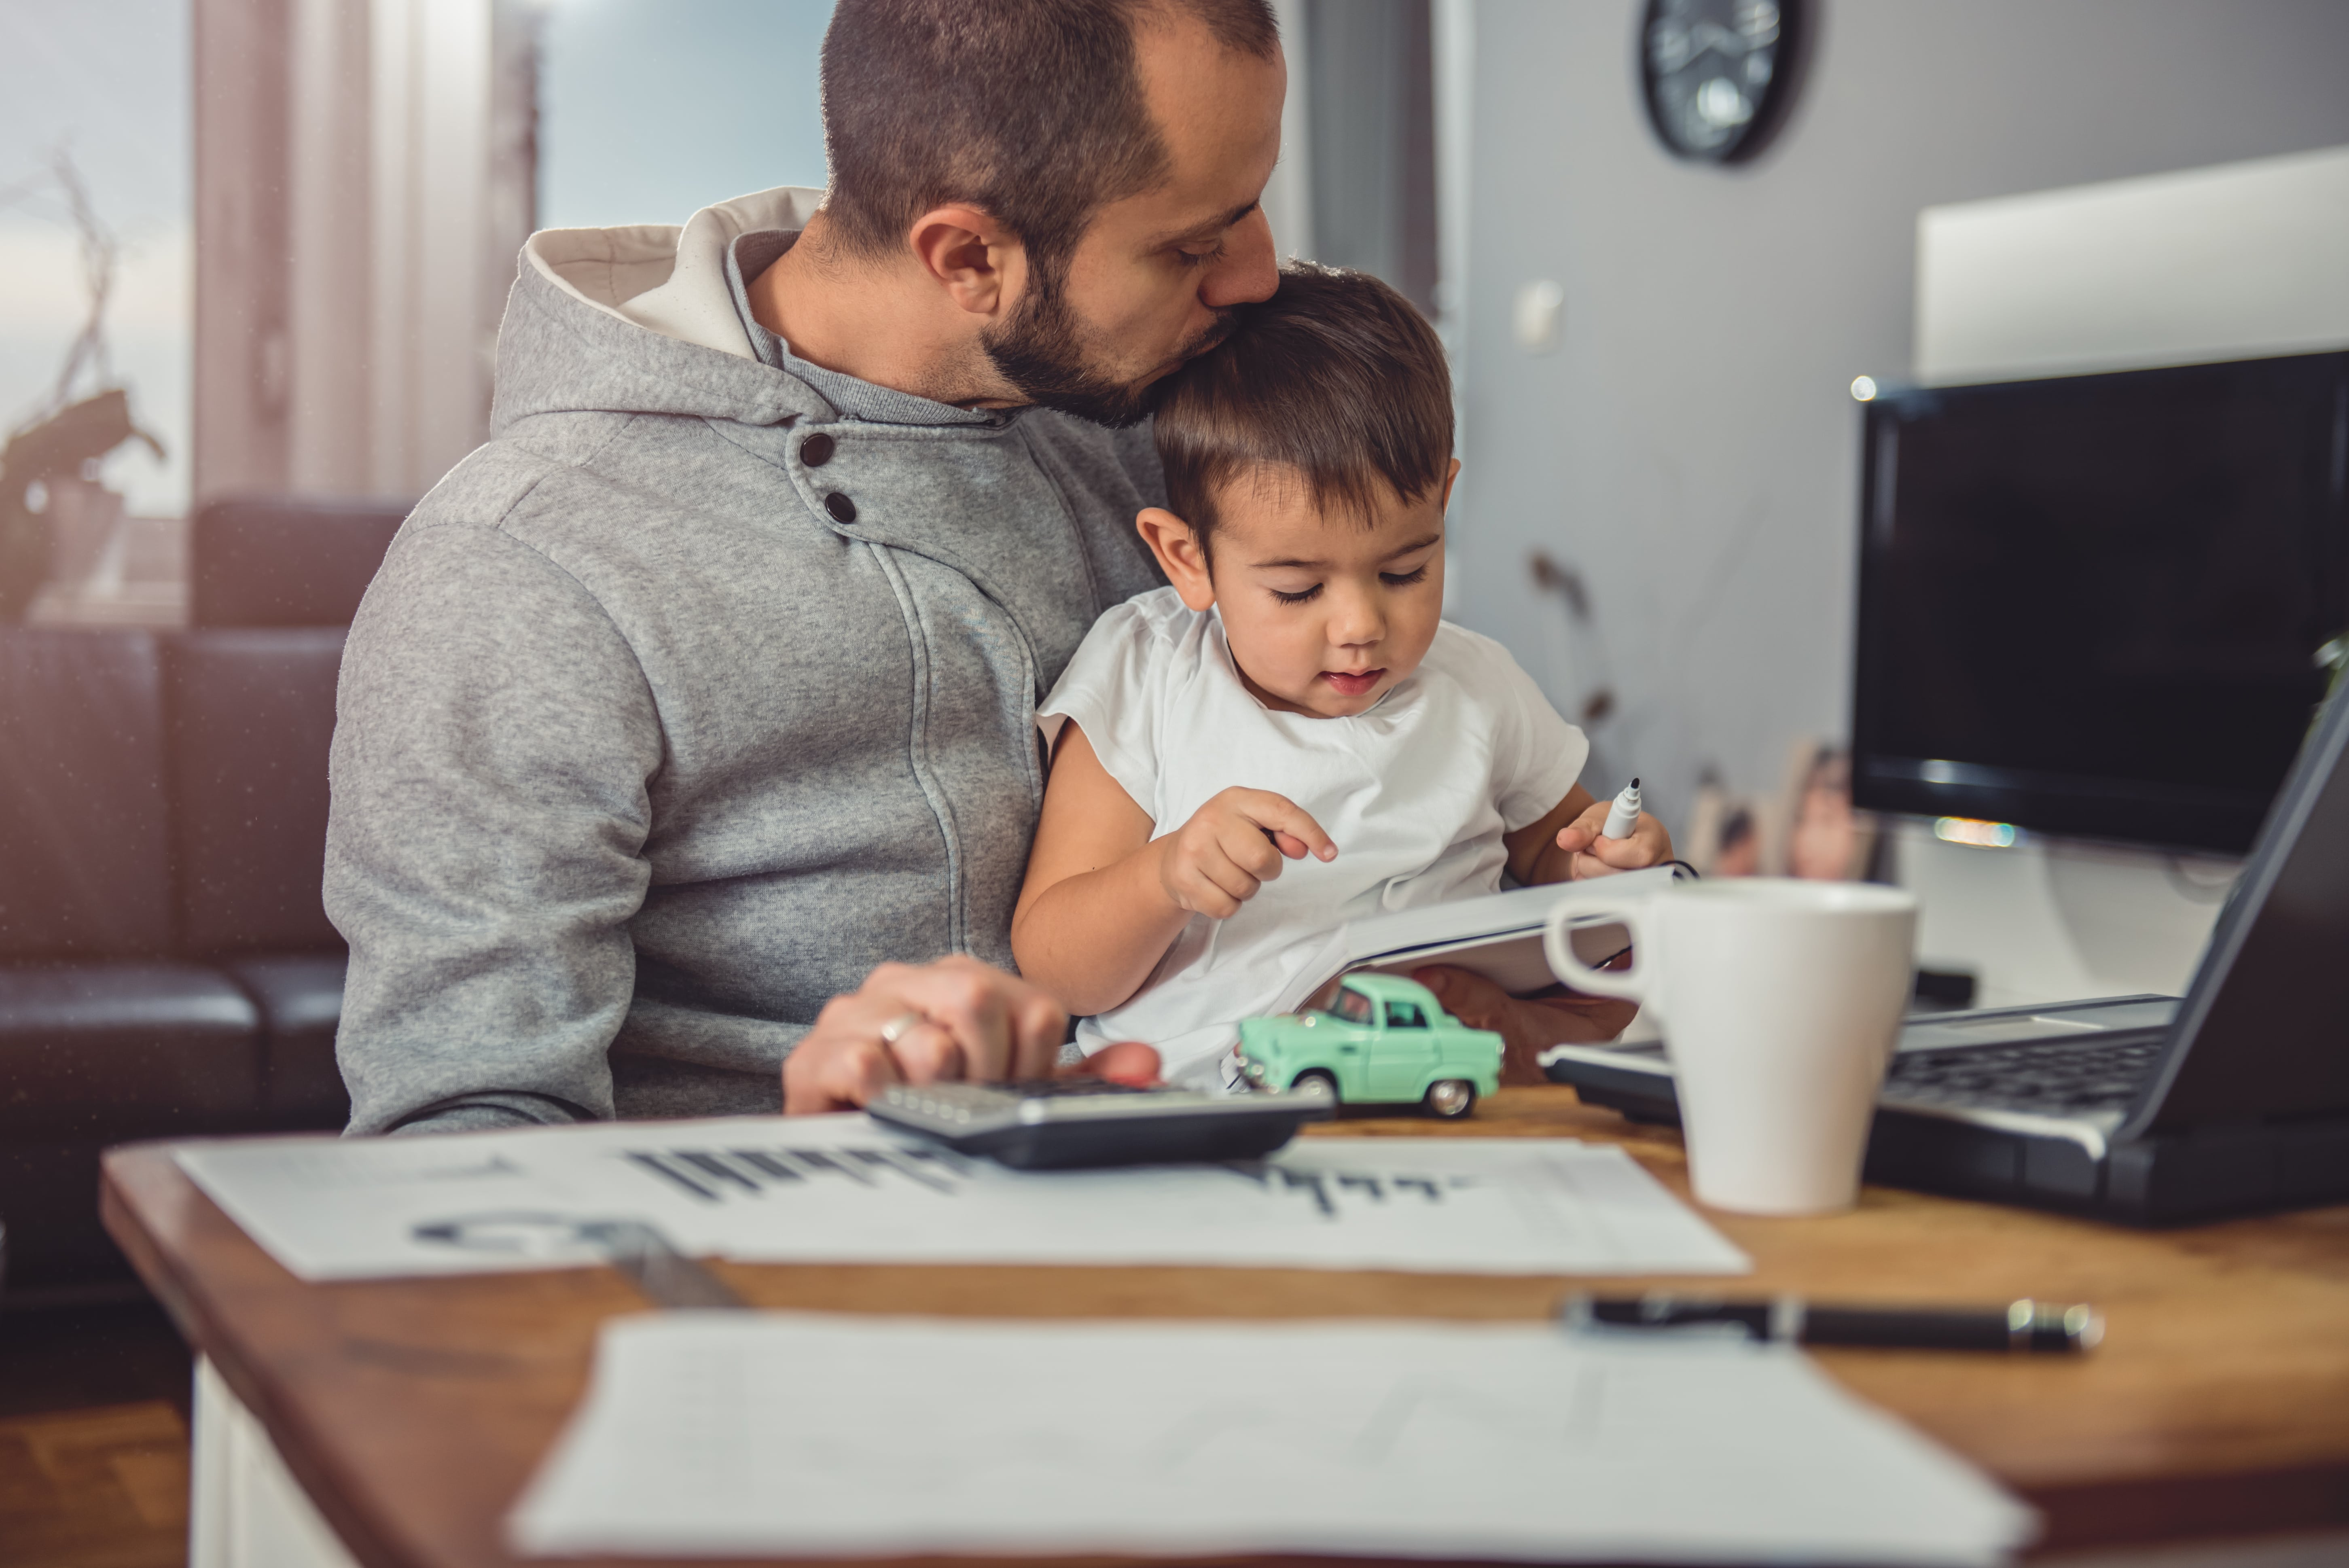 Fathers who want to work part-time can face discrimination